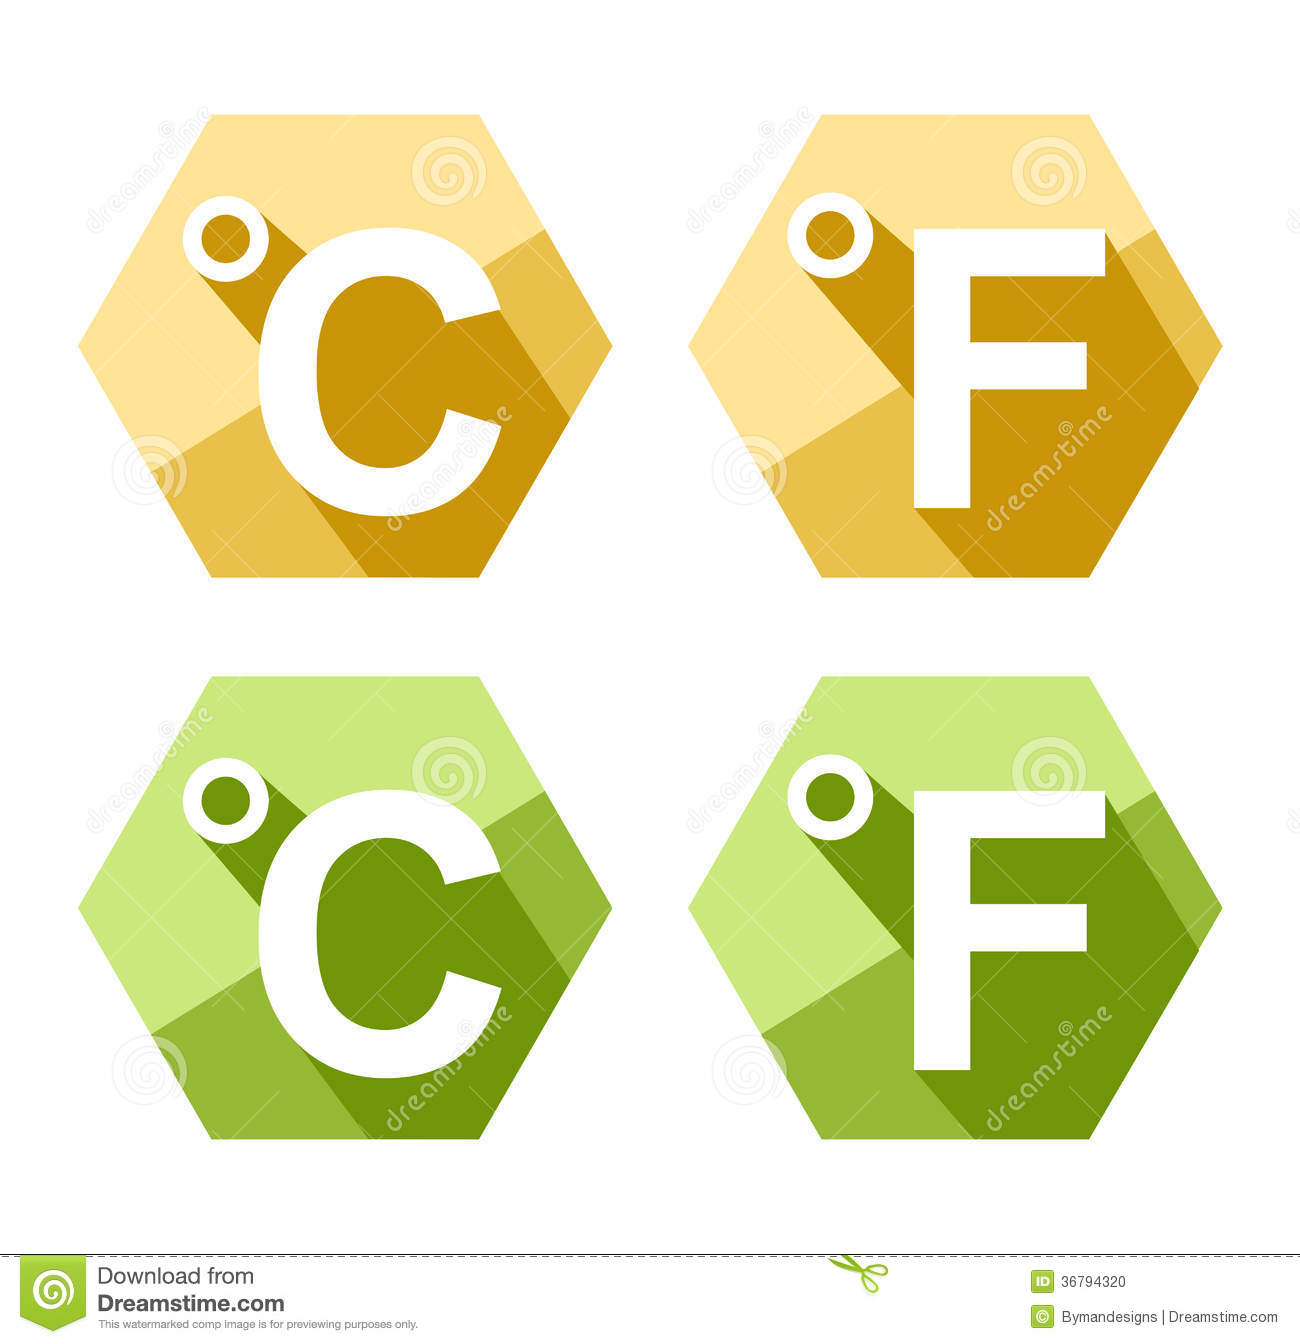 Celsius and fahrenheit symbol icon set stock vector illustration flat design celsius and fahrenheit symbol icon set stock photo biocorpaavc Choice Image